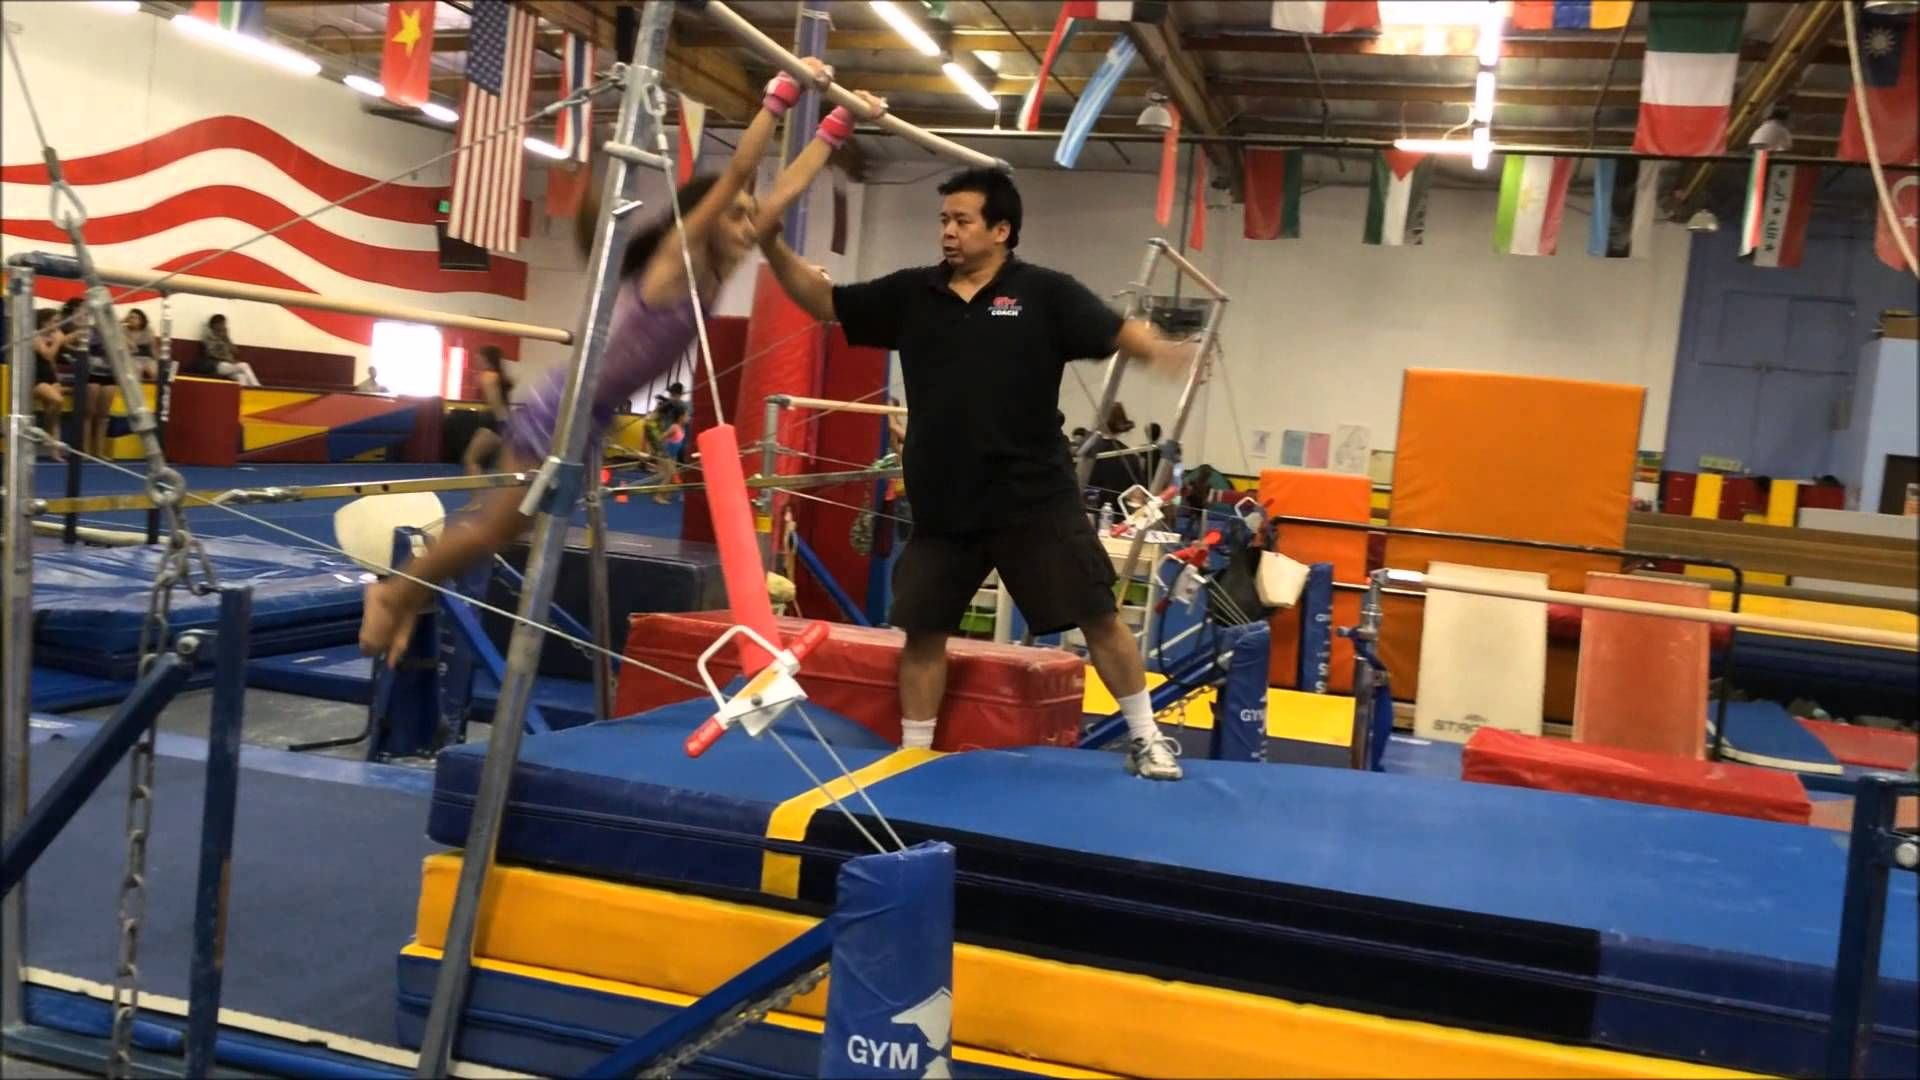 how much is gymnastics classes near me